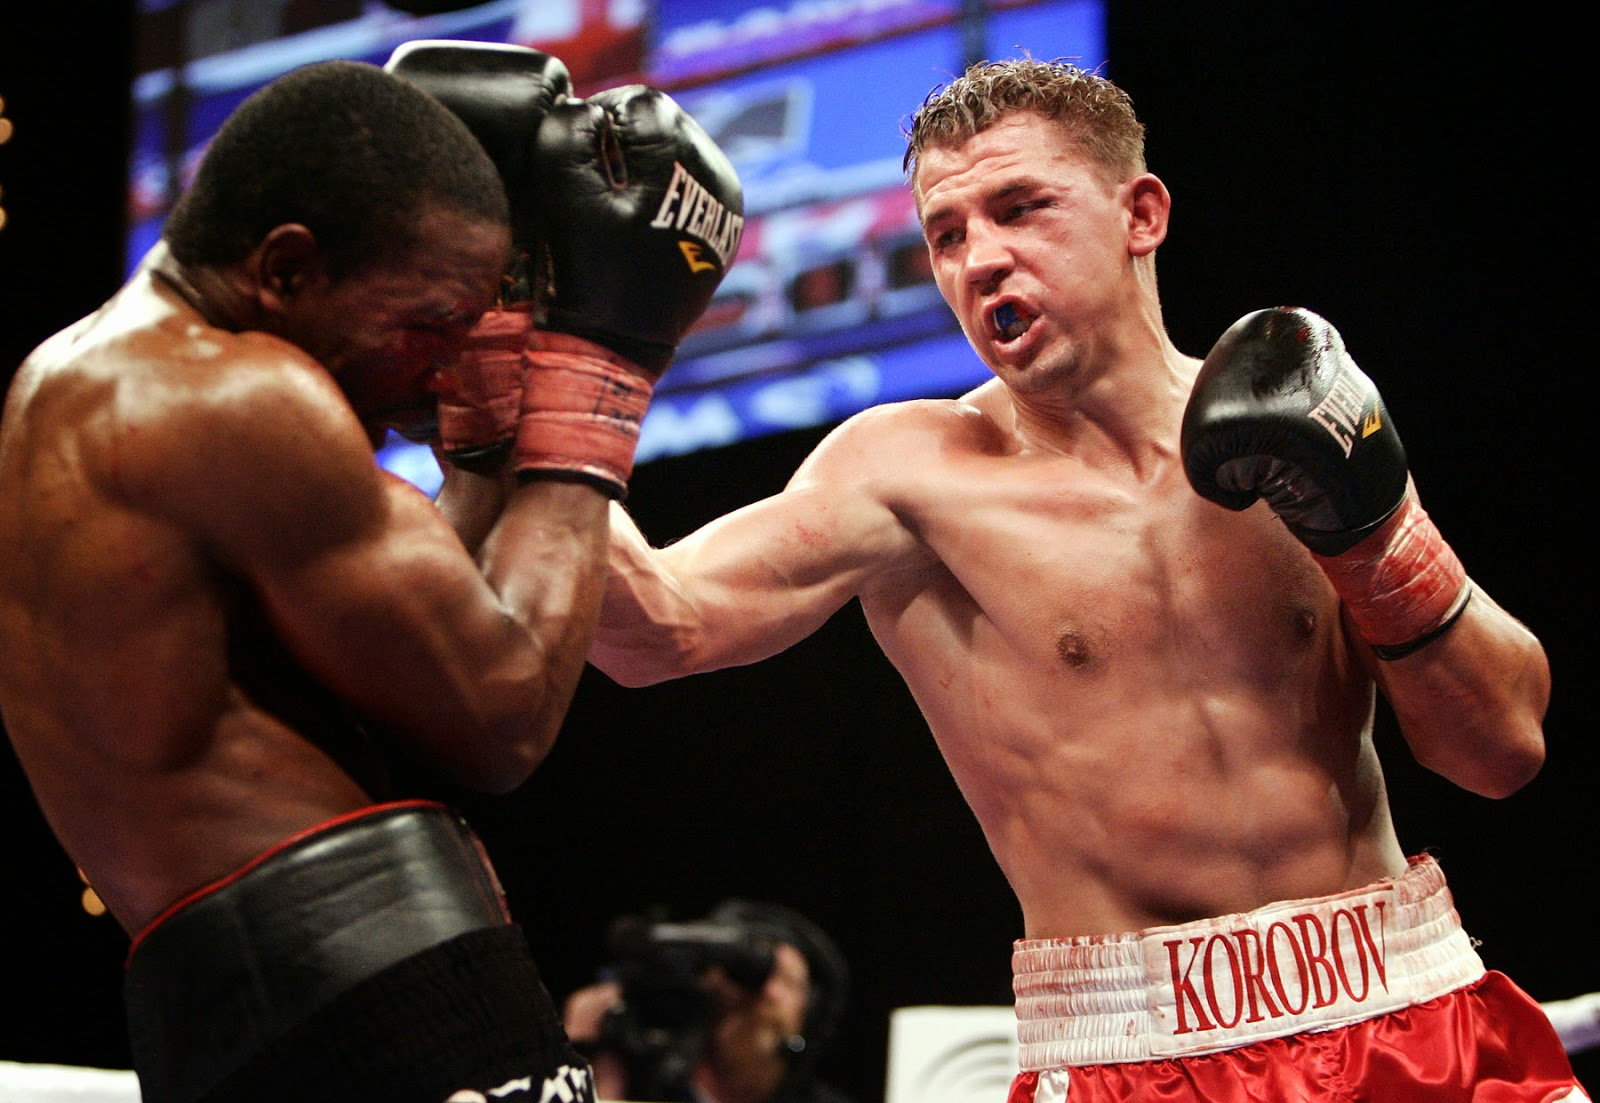 Matt Korobov vs. Jose Uzcategui live Boxing on 28 June 2014